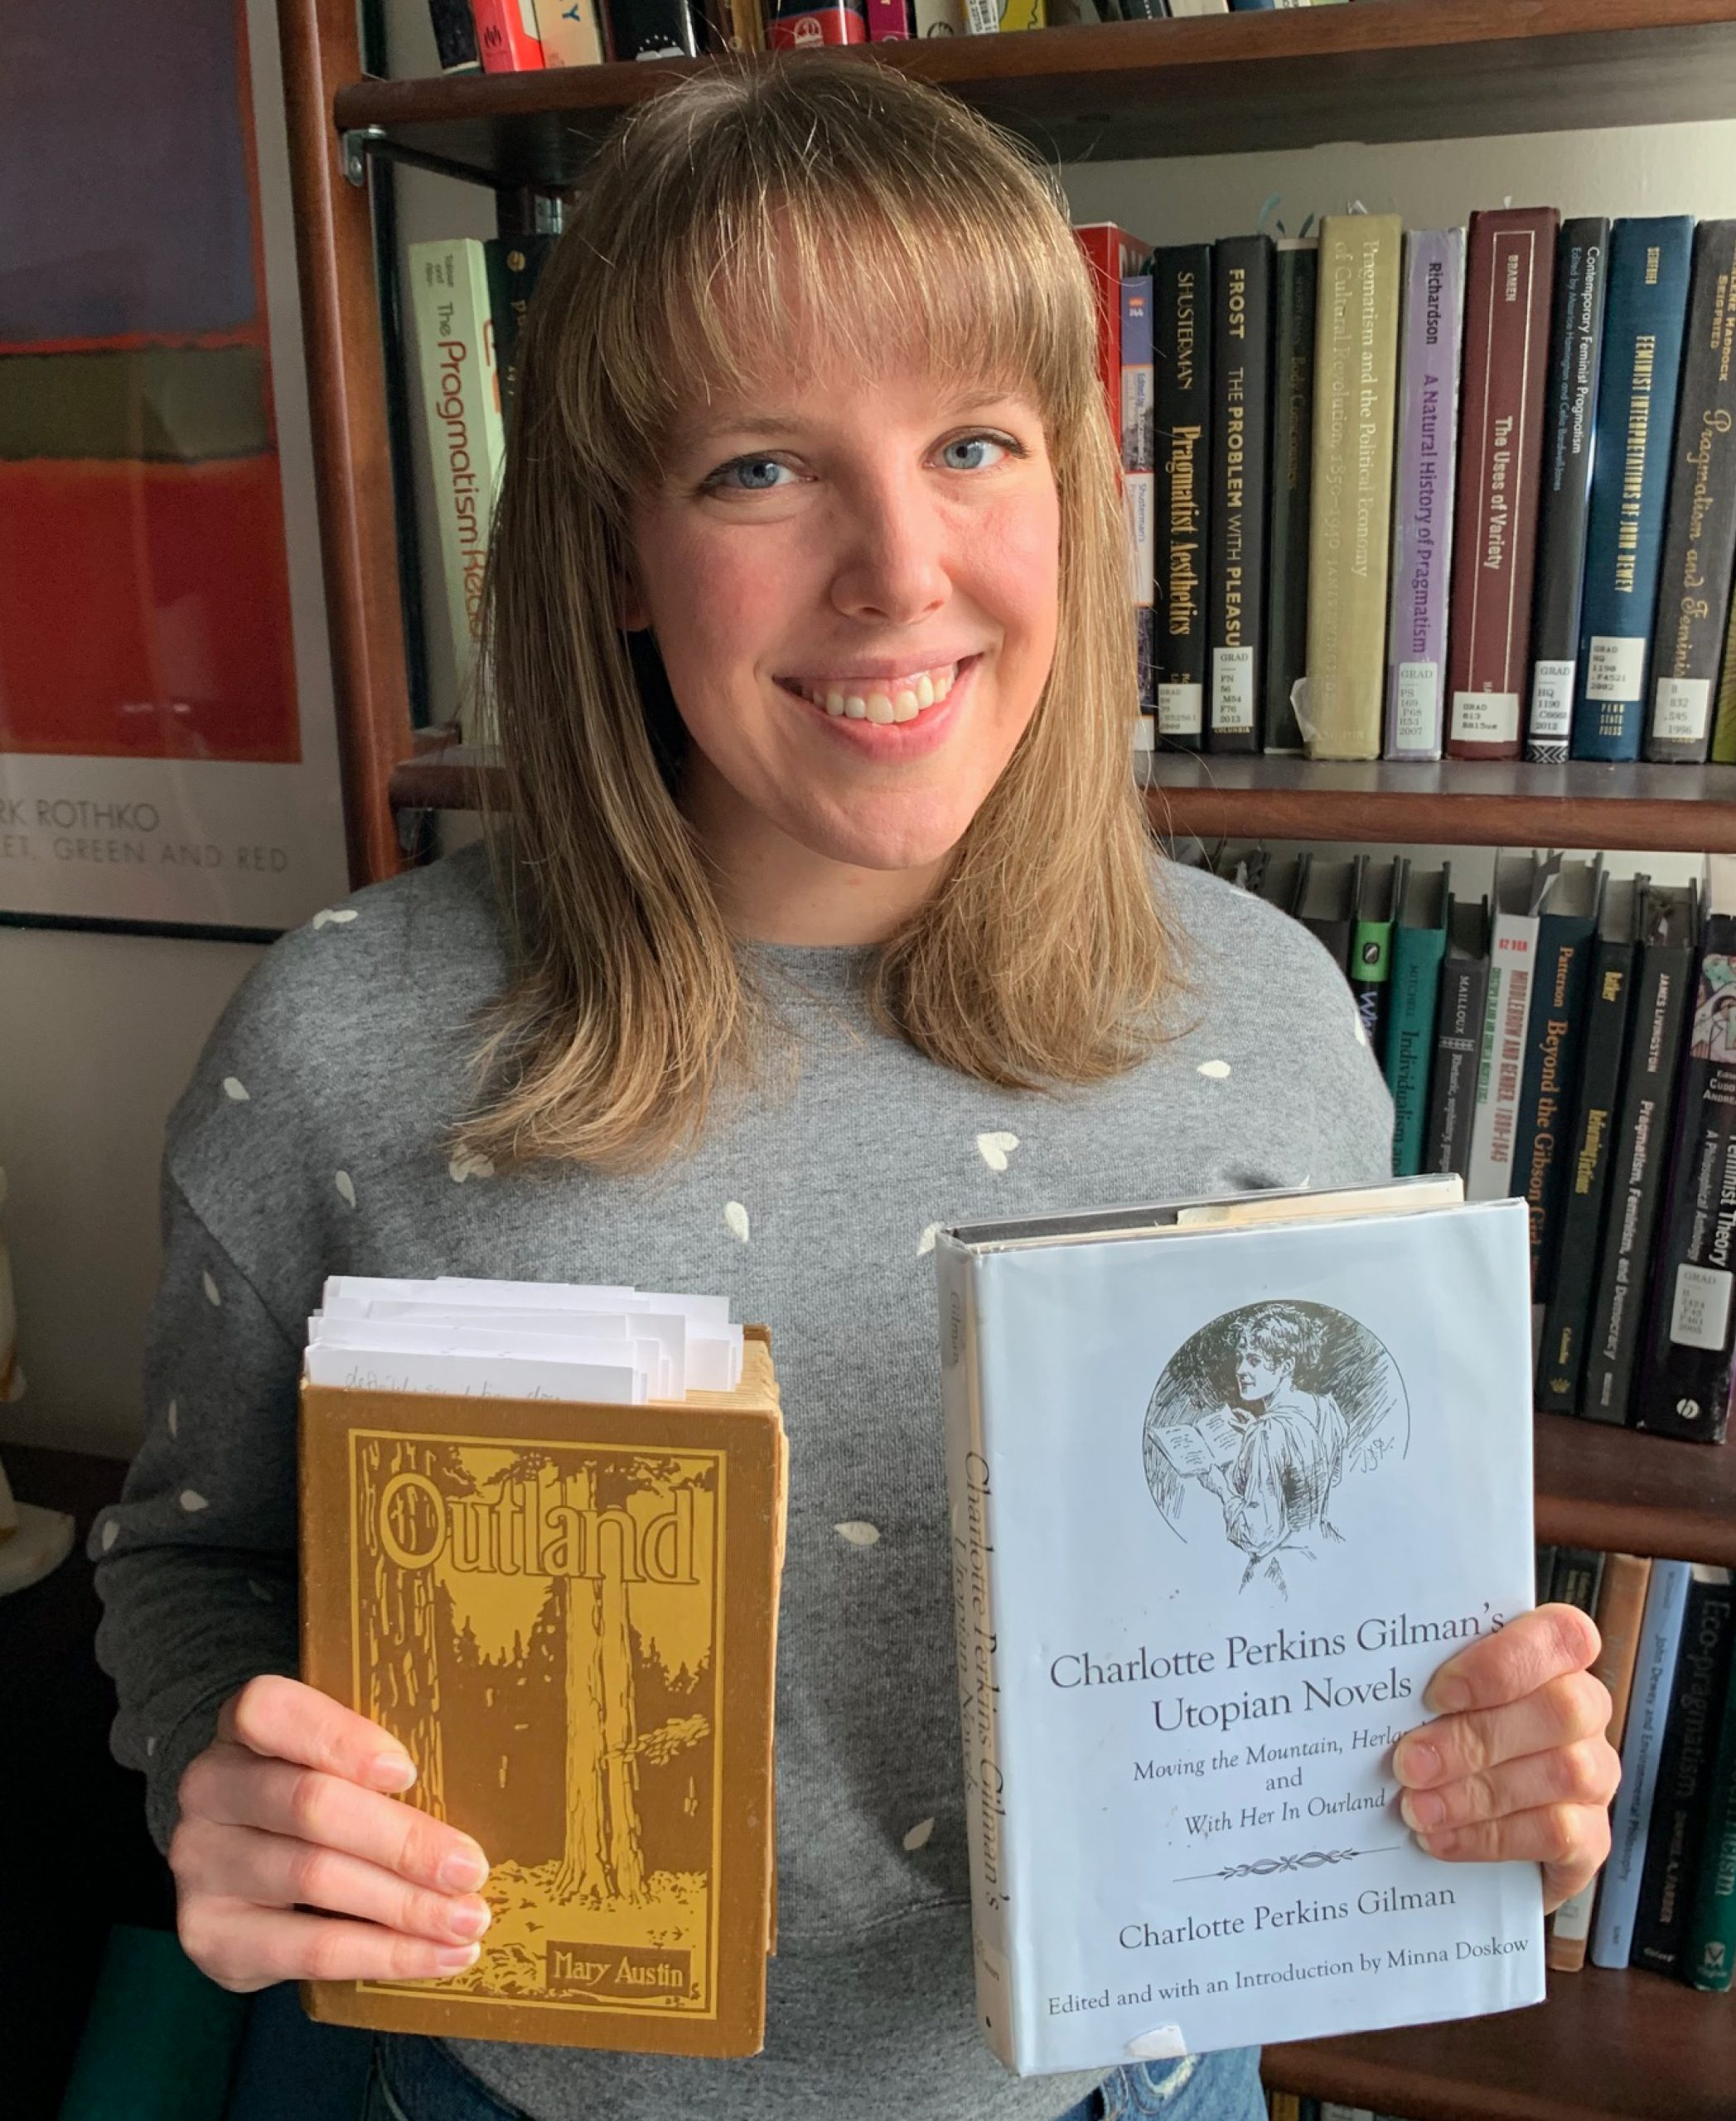 Elizabeth Harlow in front of a bookshelf, holding up copies of Mary Austin's Outland and the collected Utopian novels of Charlotte Perkins Gilman.